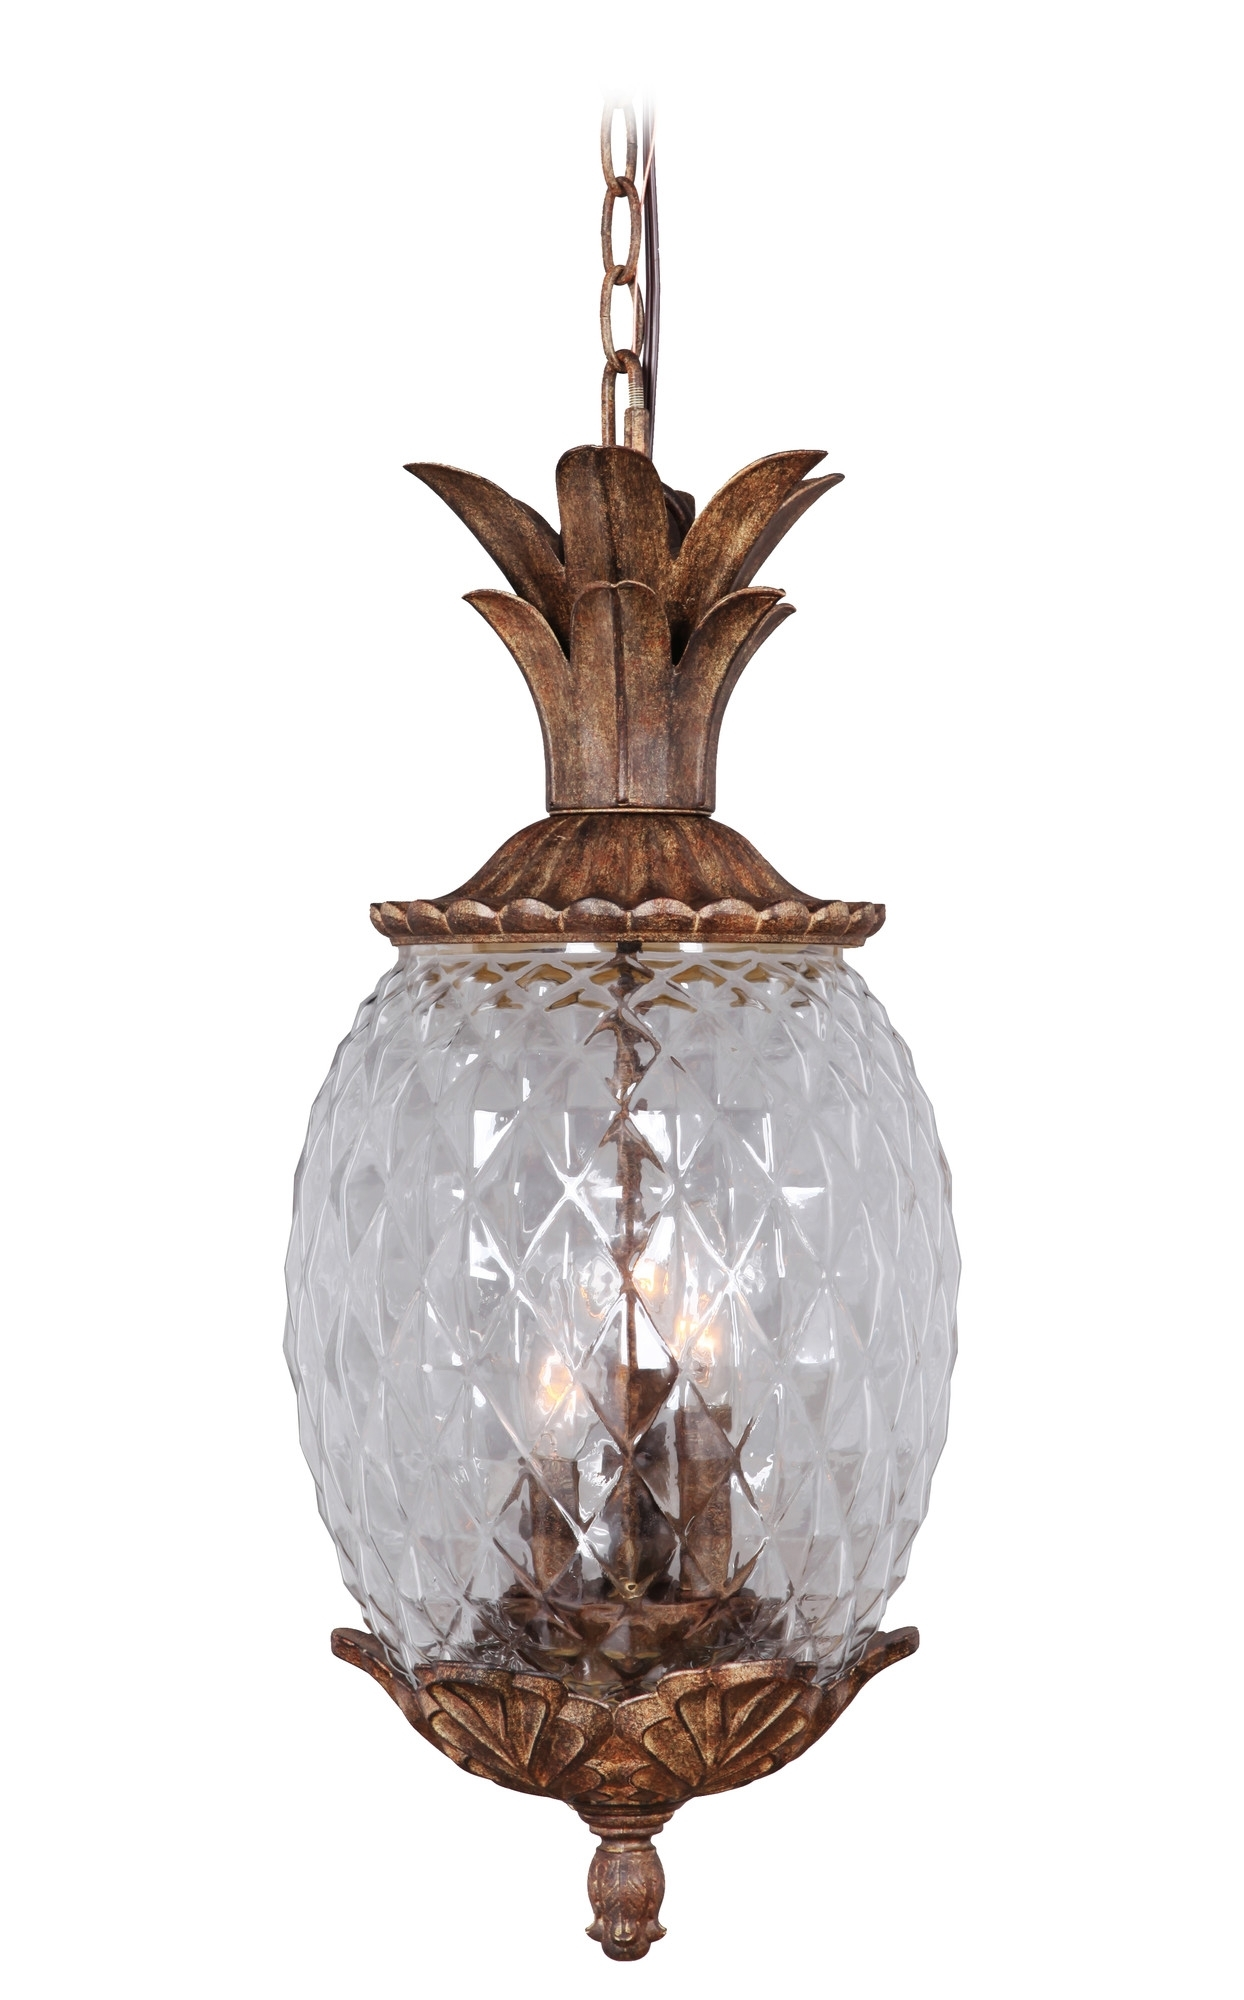 Marianahome Pineapple 3 Light Pendant & Reviews | Wayfair | Lighting In Contemporary Outdoor String Lights At Wayfair (#8 of 15)